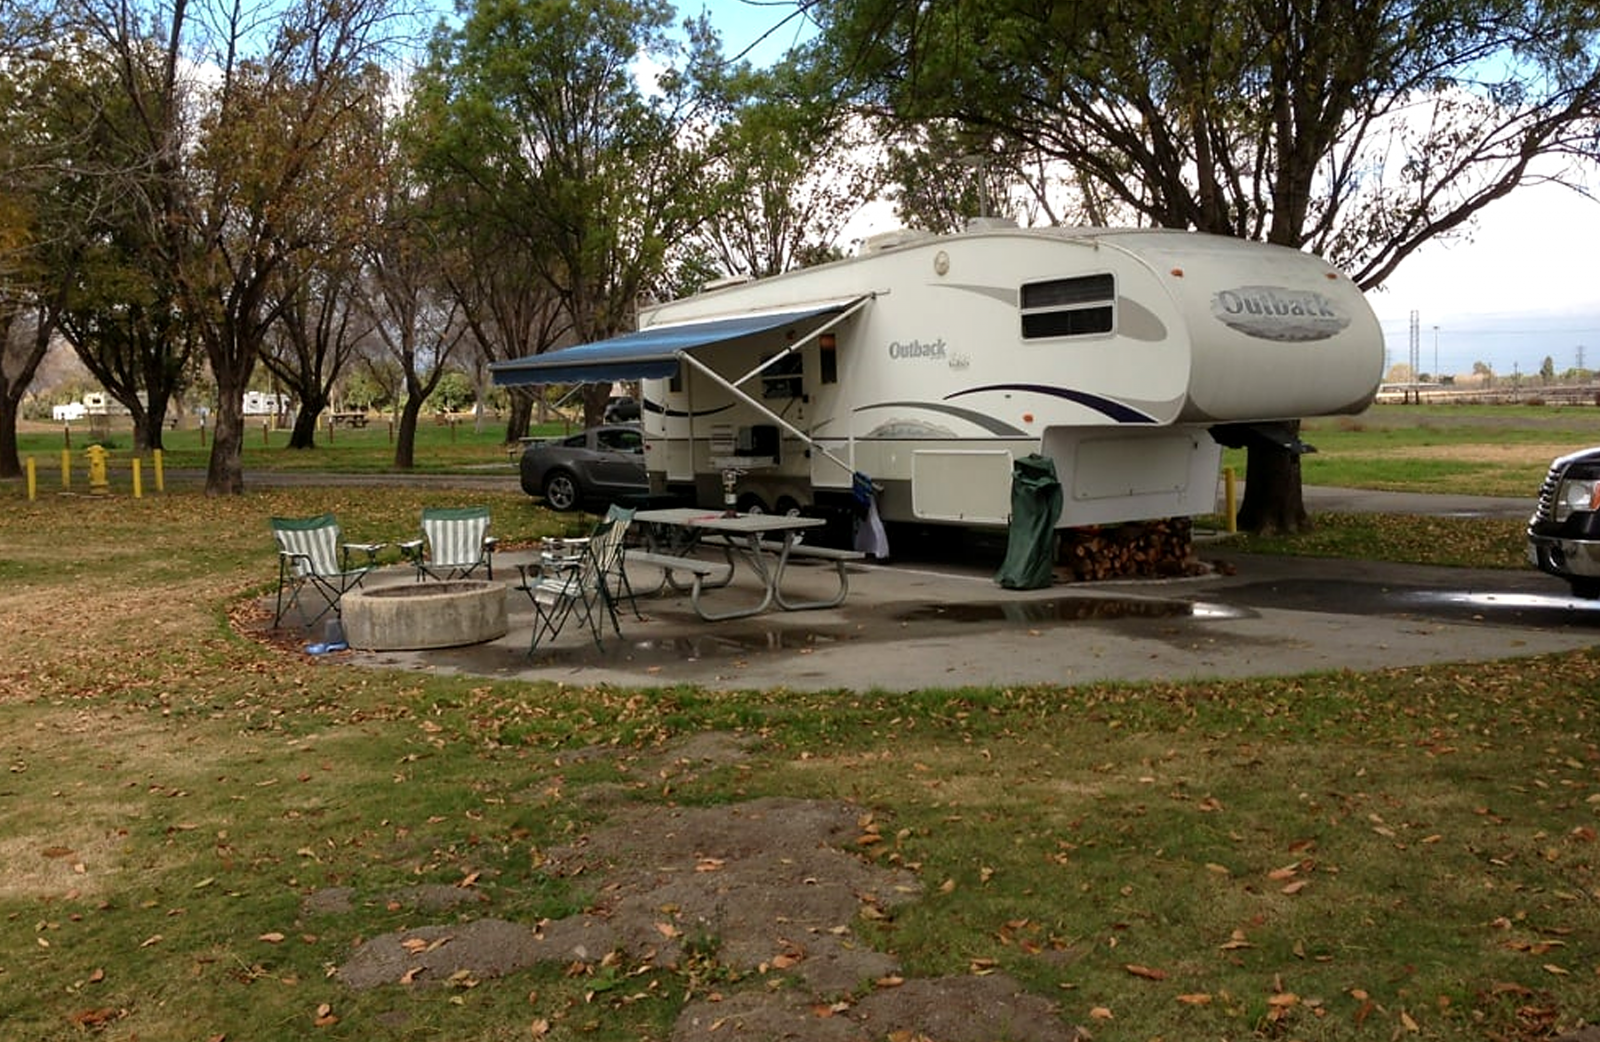 A single camping trailer sits on a concrete slab near grass and a fire ring at Prado park.